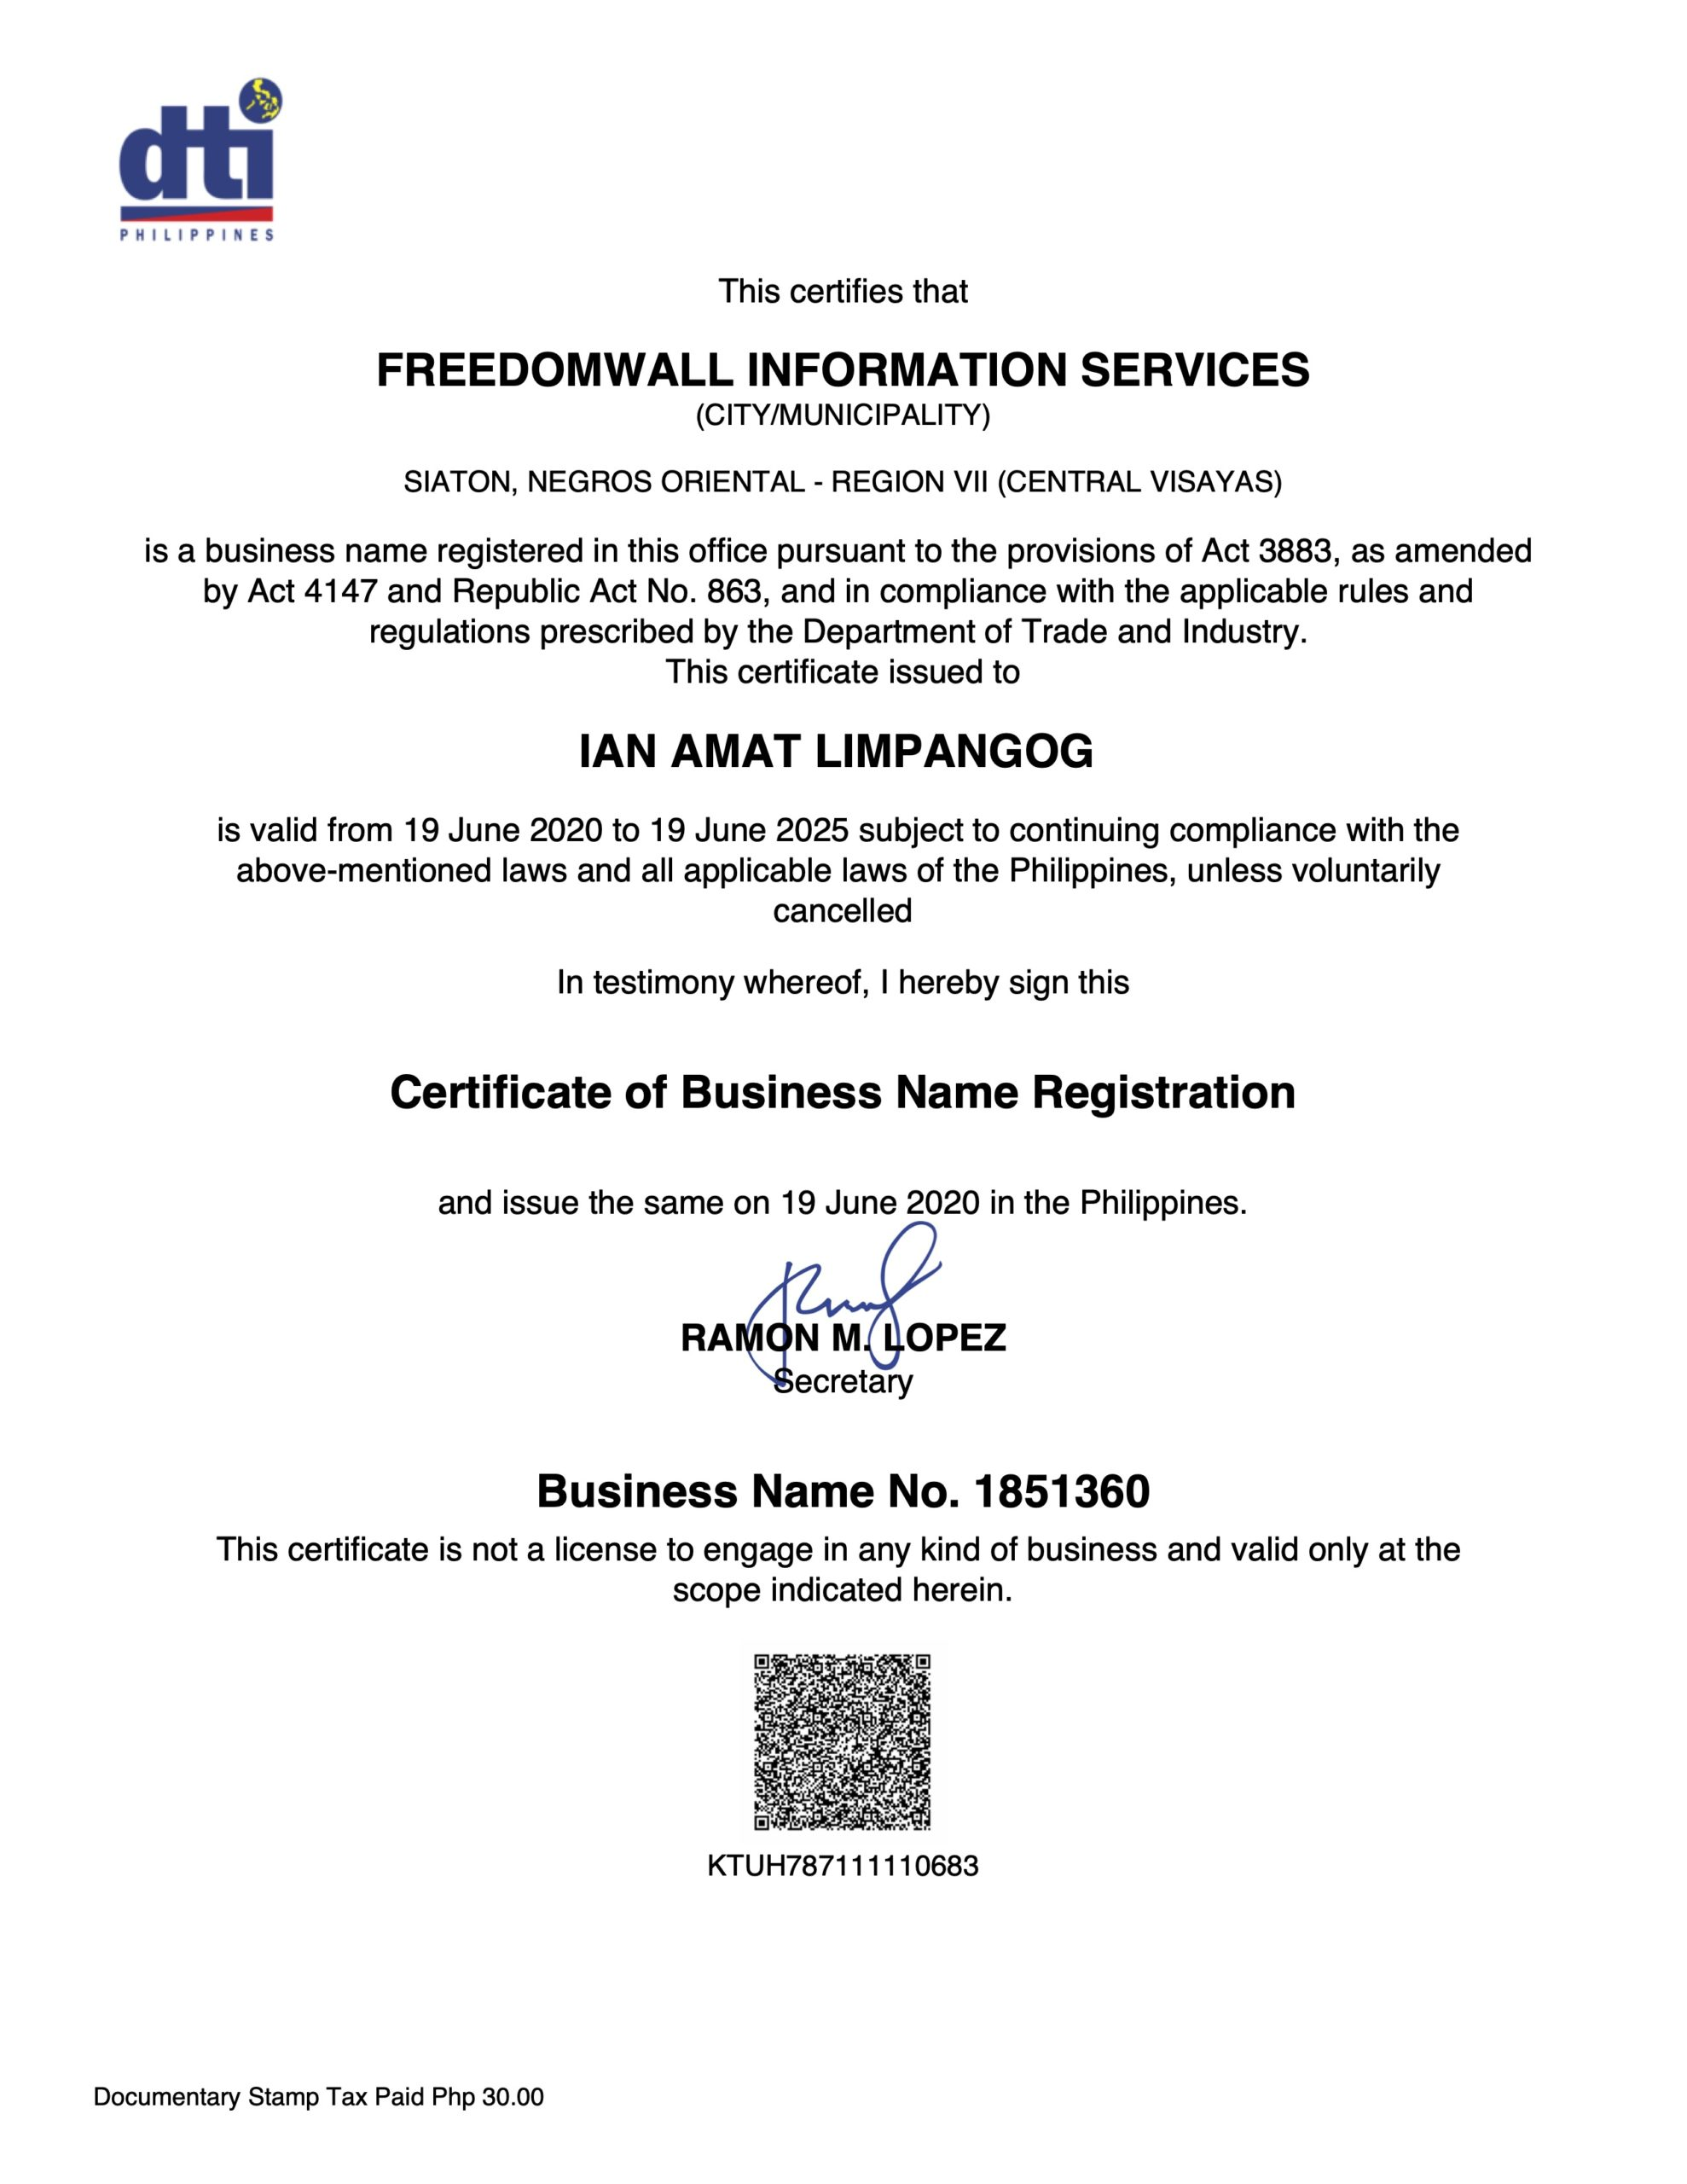 DTI Registration - FreedomWall Information Services